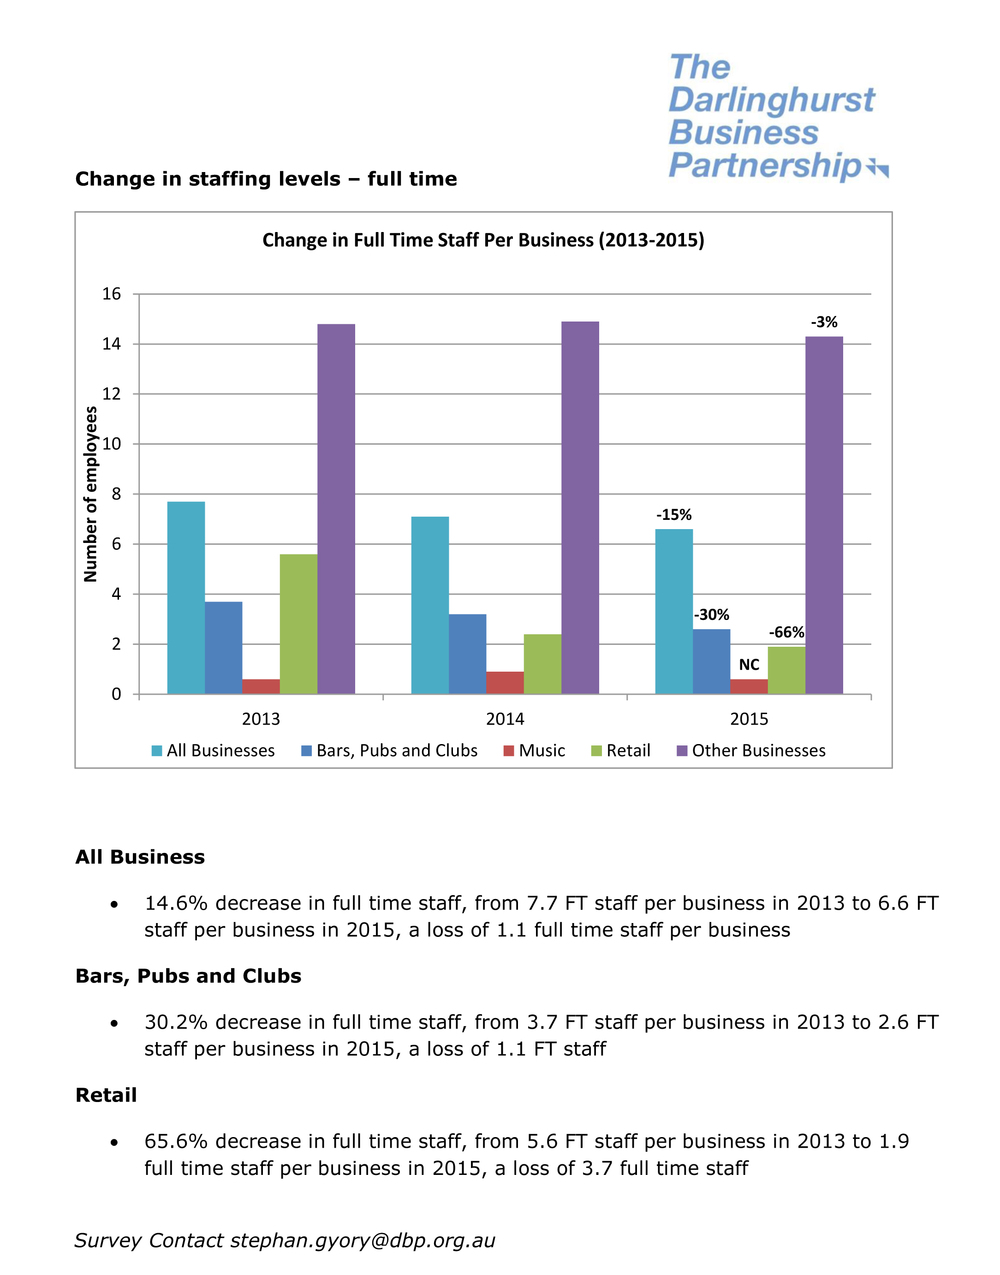 Change in Full Time Staffing Levels Darlinghurst 2015.jpg